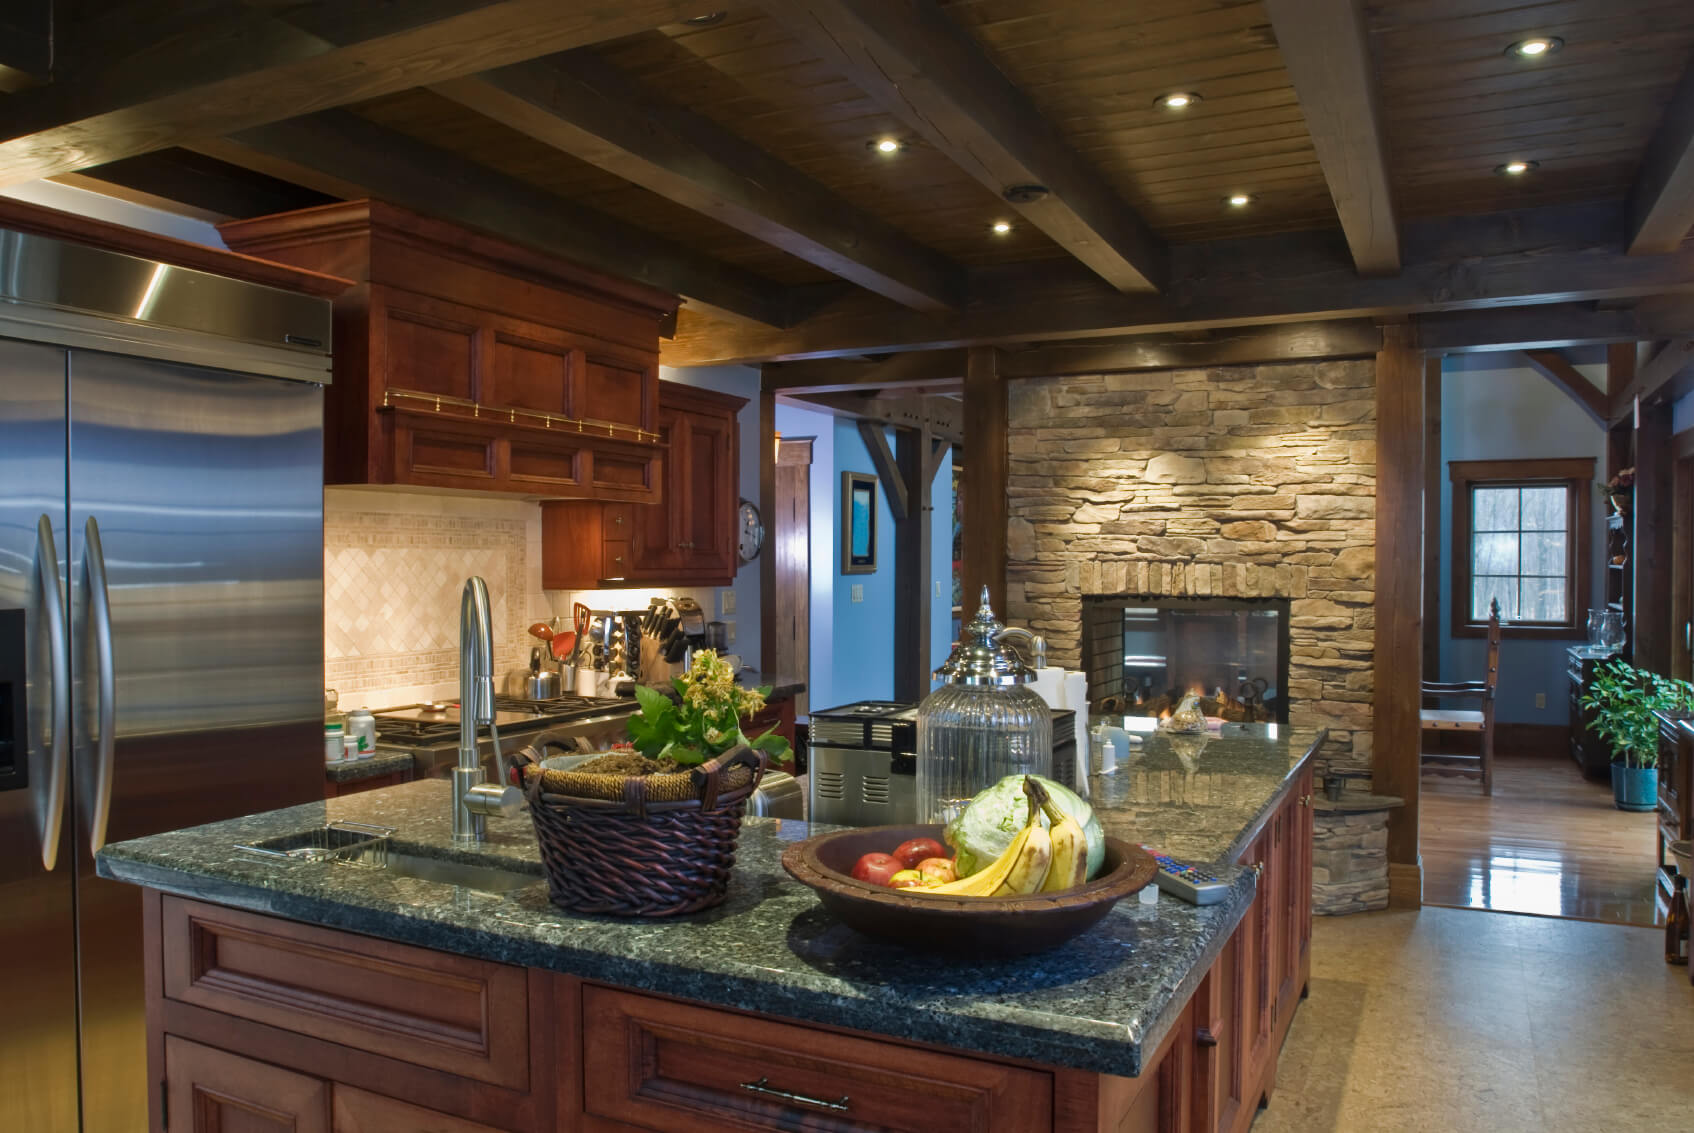 dark kitchen cabinets cherry wood cabinets kitchen Rustic look kitchen features brick pass through fireplace under dark wood exposed beams with